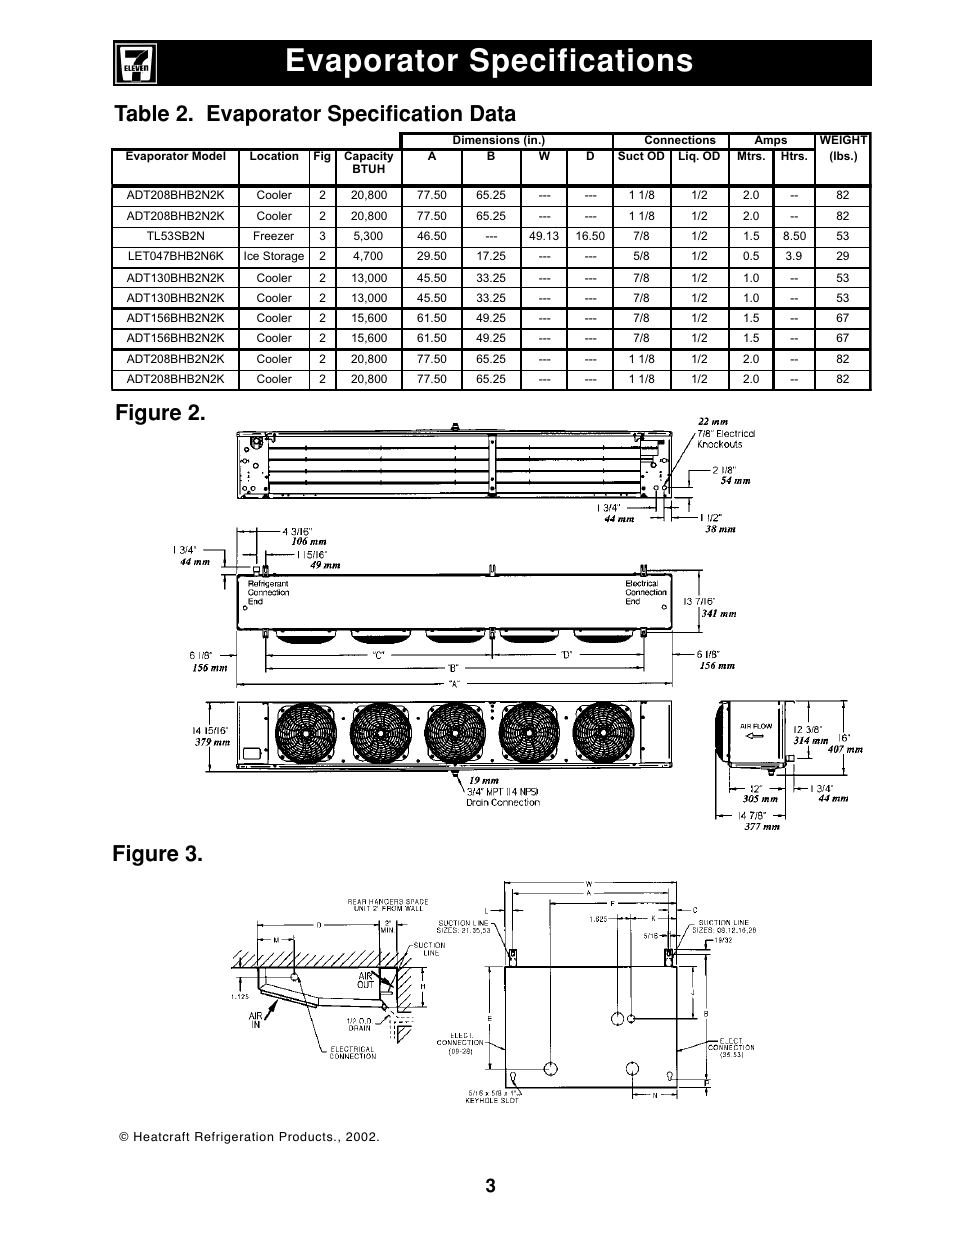 Evaporator specifications, Figure 2. table 2. evaporator